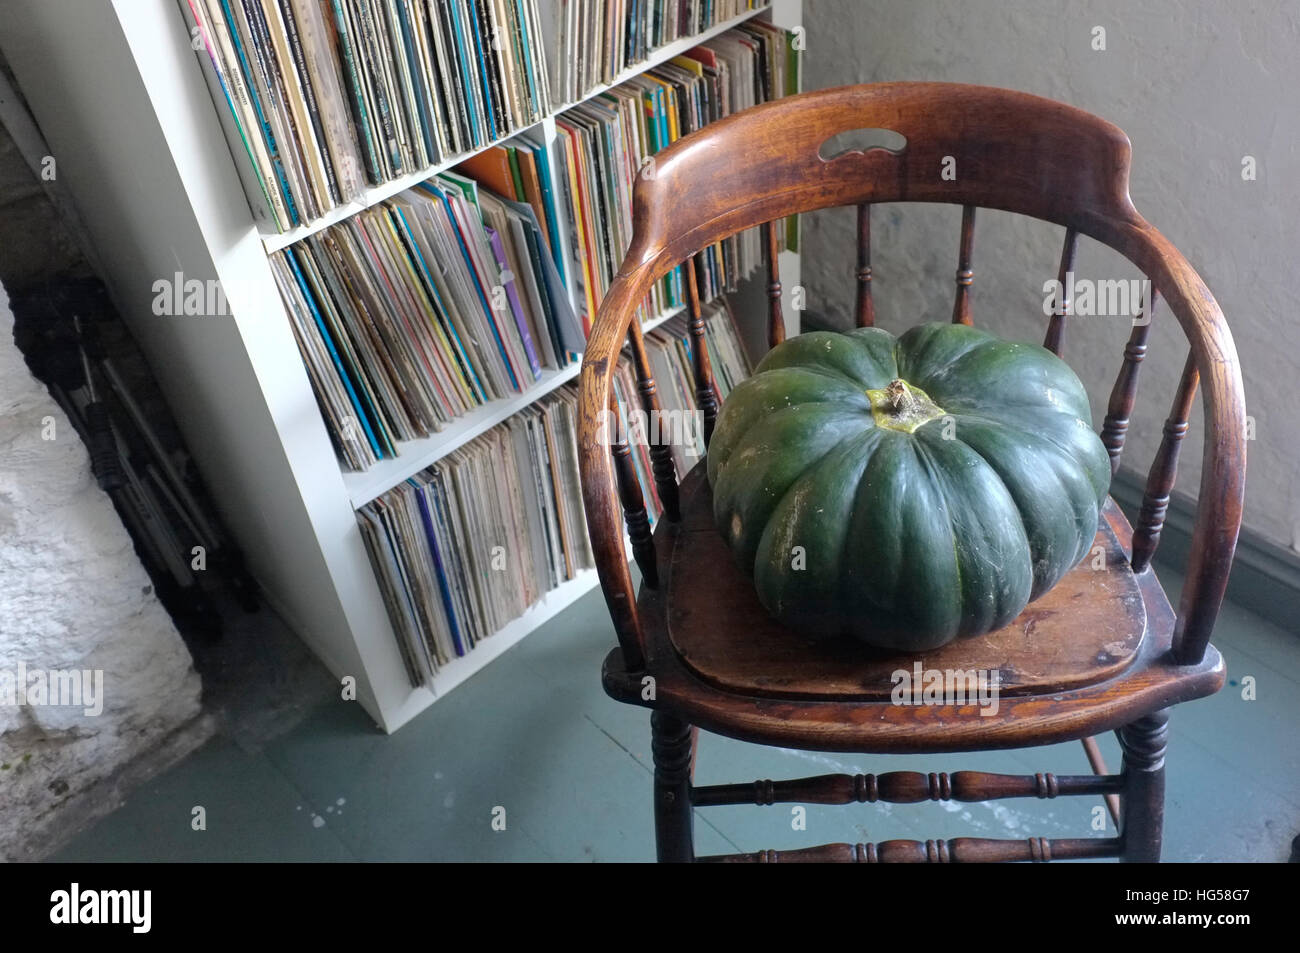 A large pumpkin/squash on a chair. - Stock Image